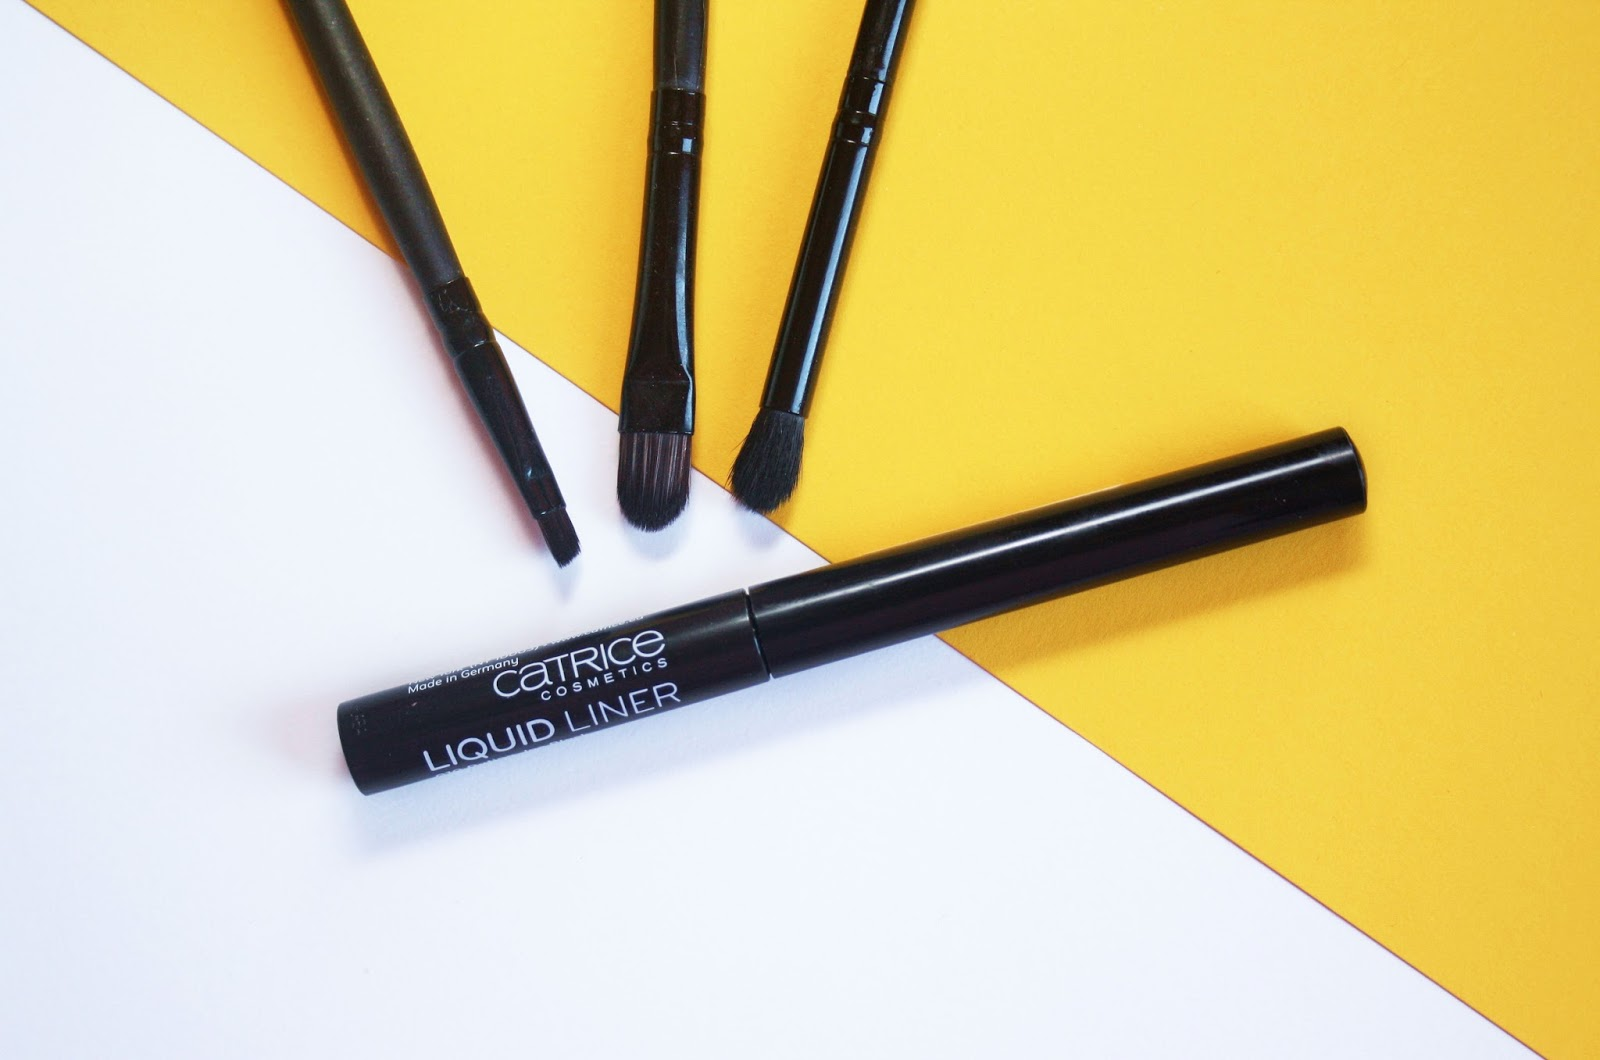 Catrice liquid liner 010 dating joe black